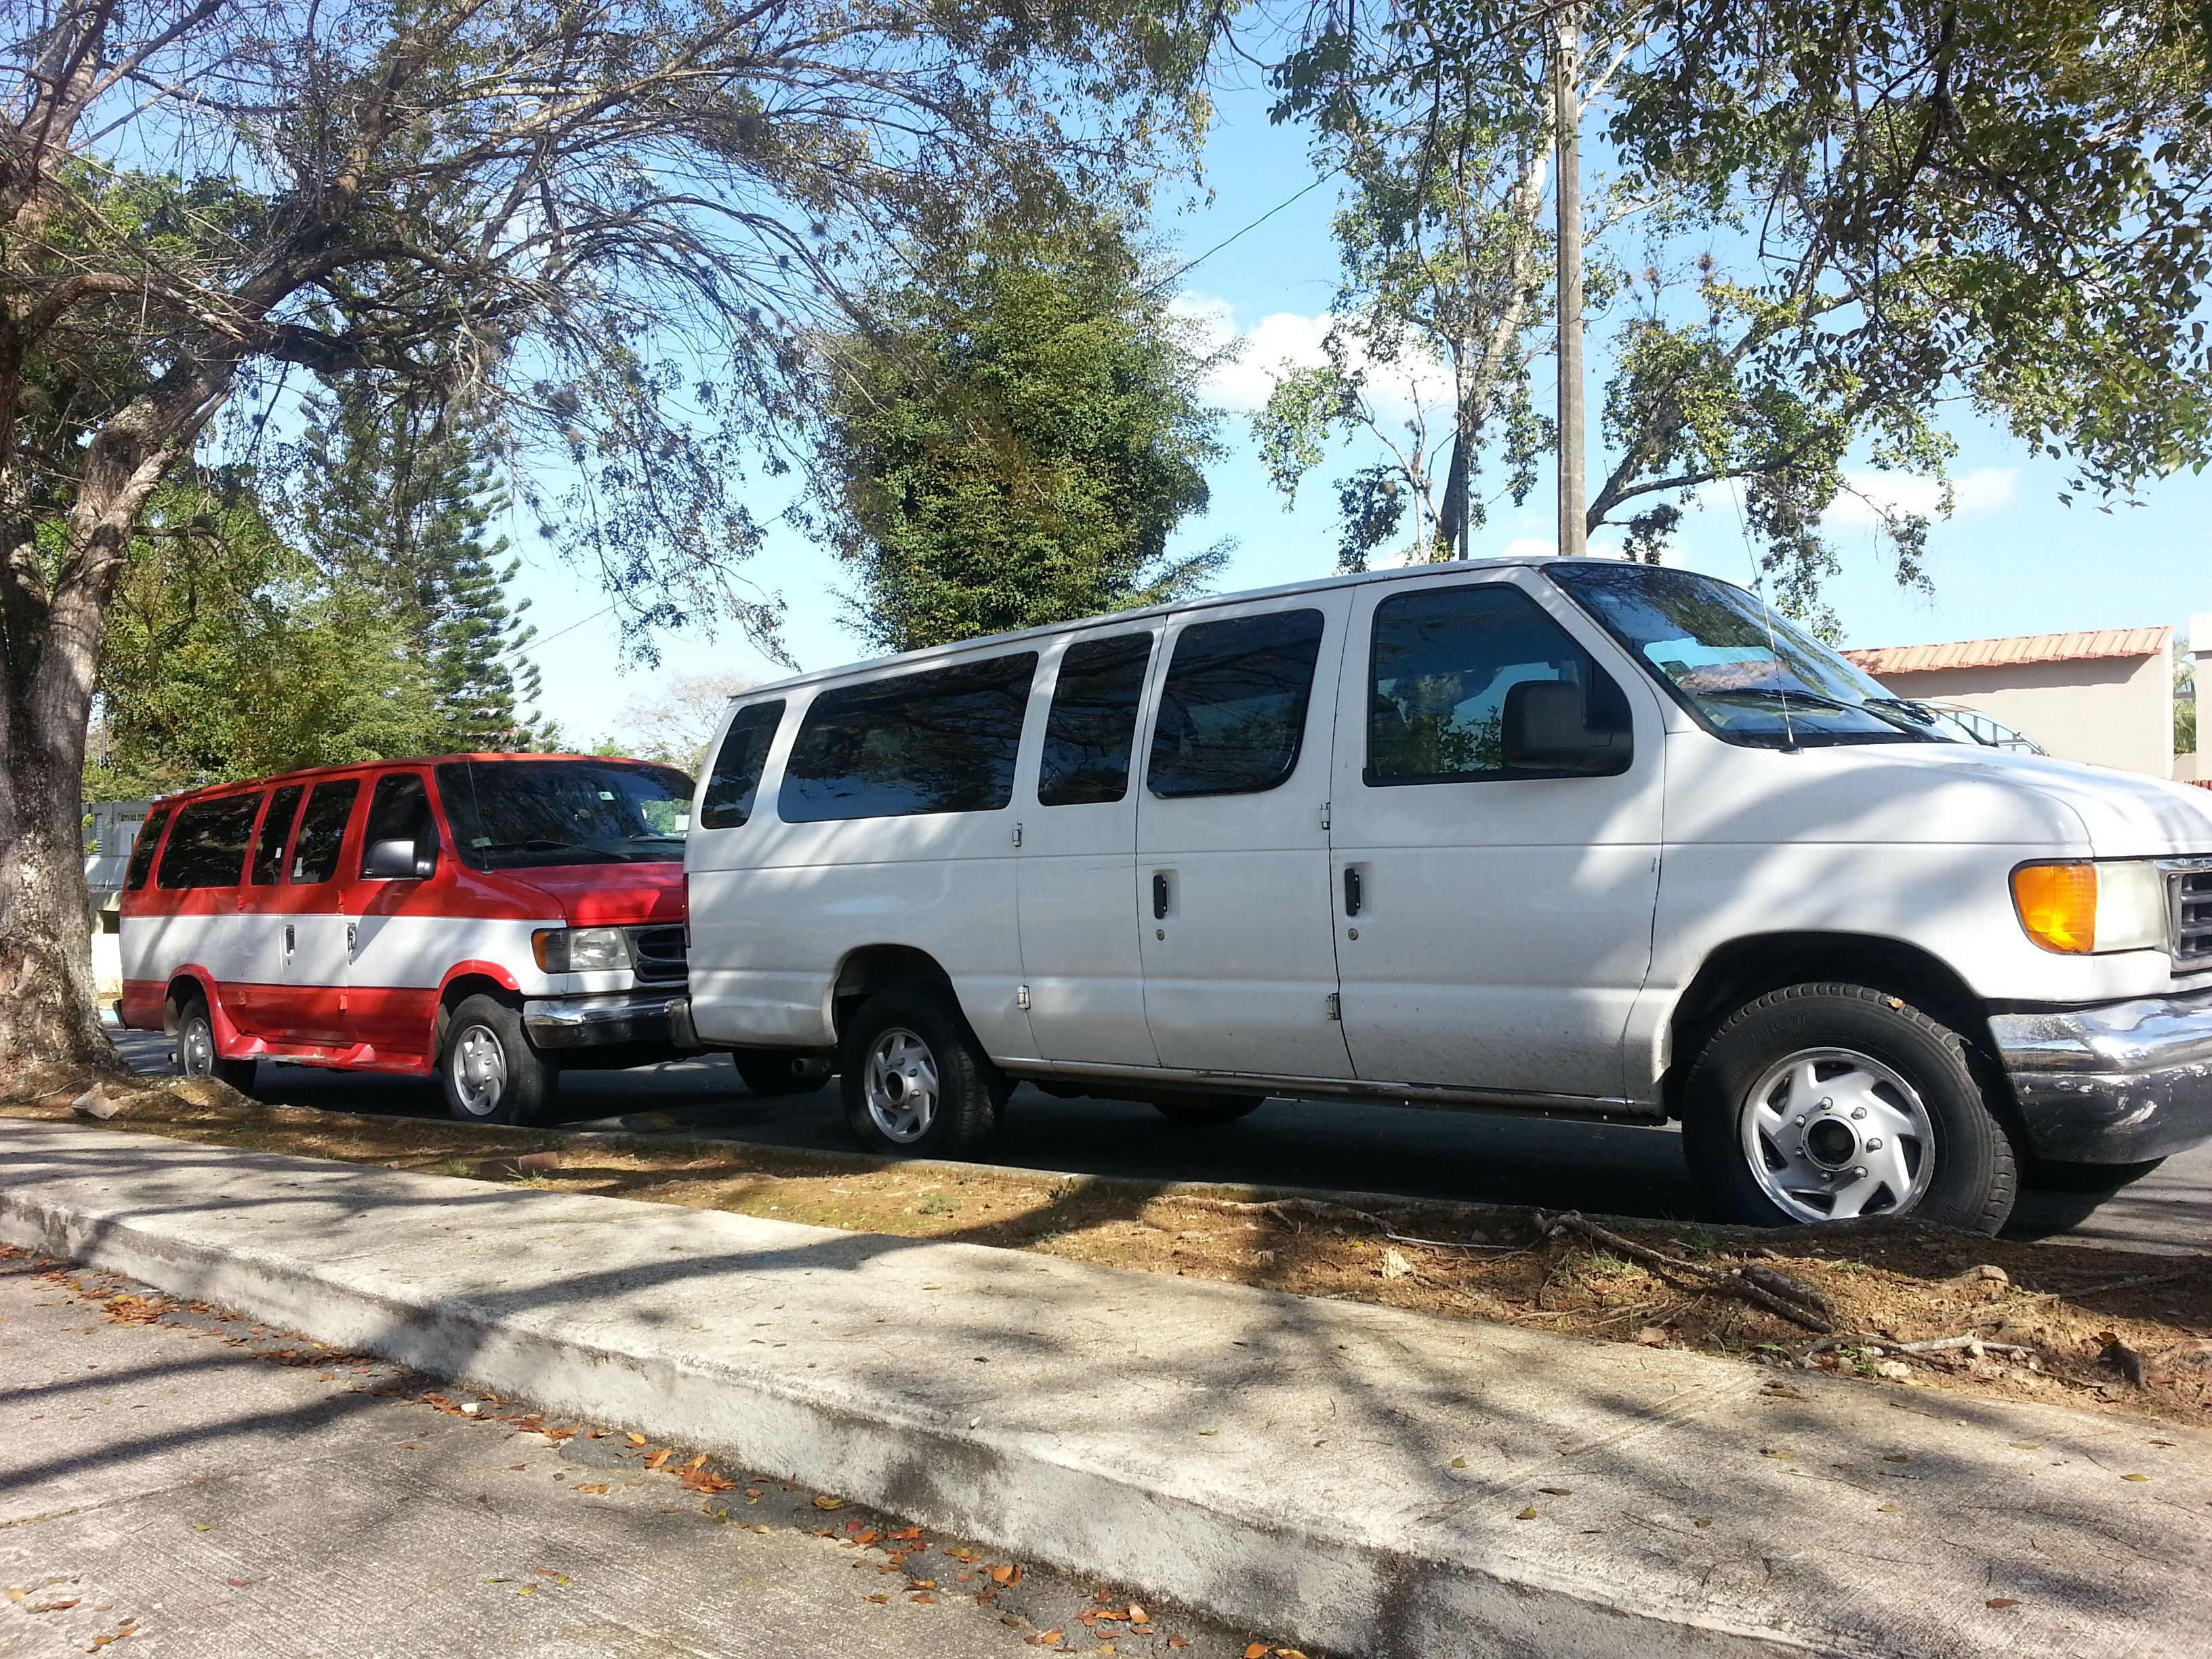 2 15 Pasenger Vans For Rent Waiting Your Group In San Juan Or